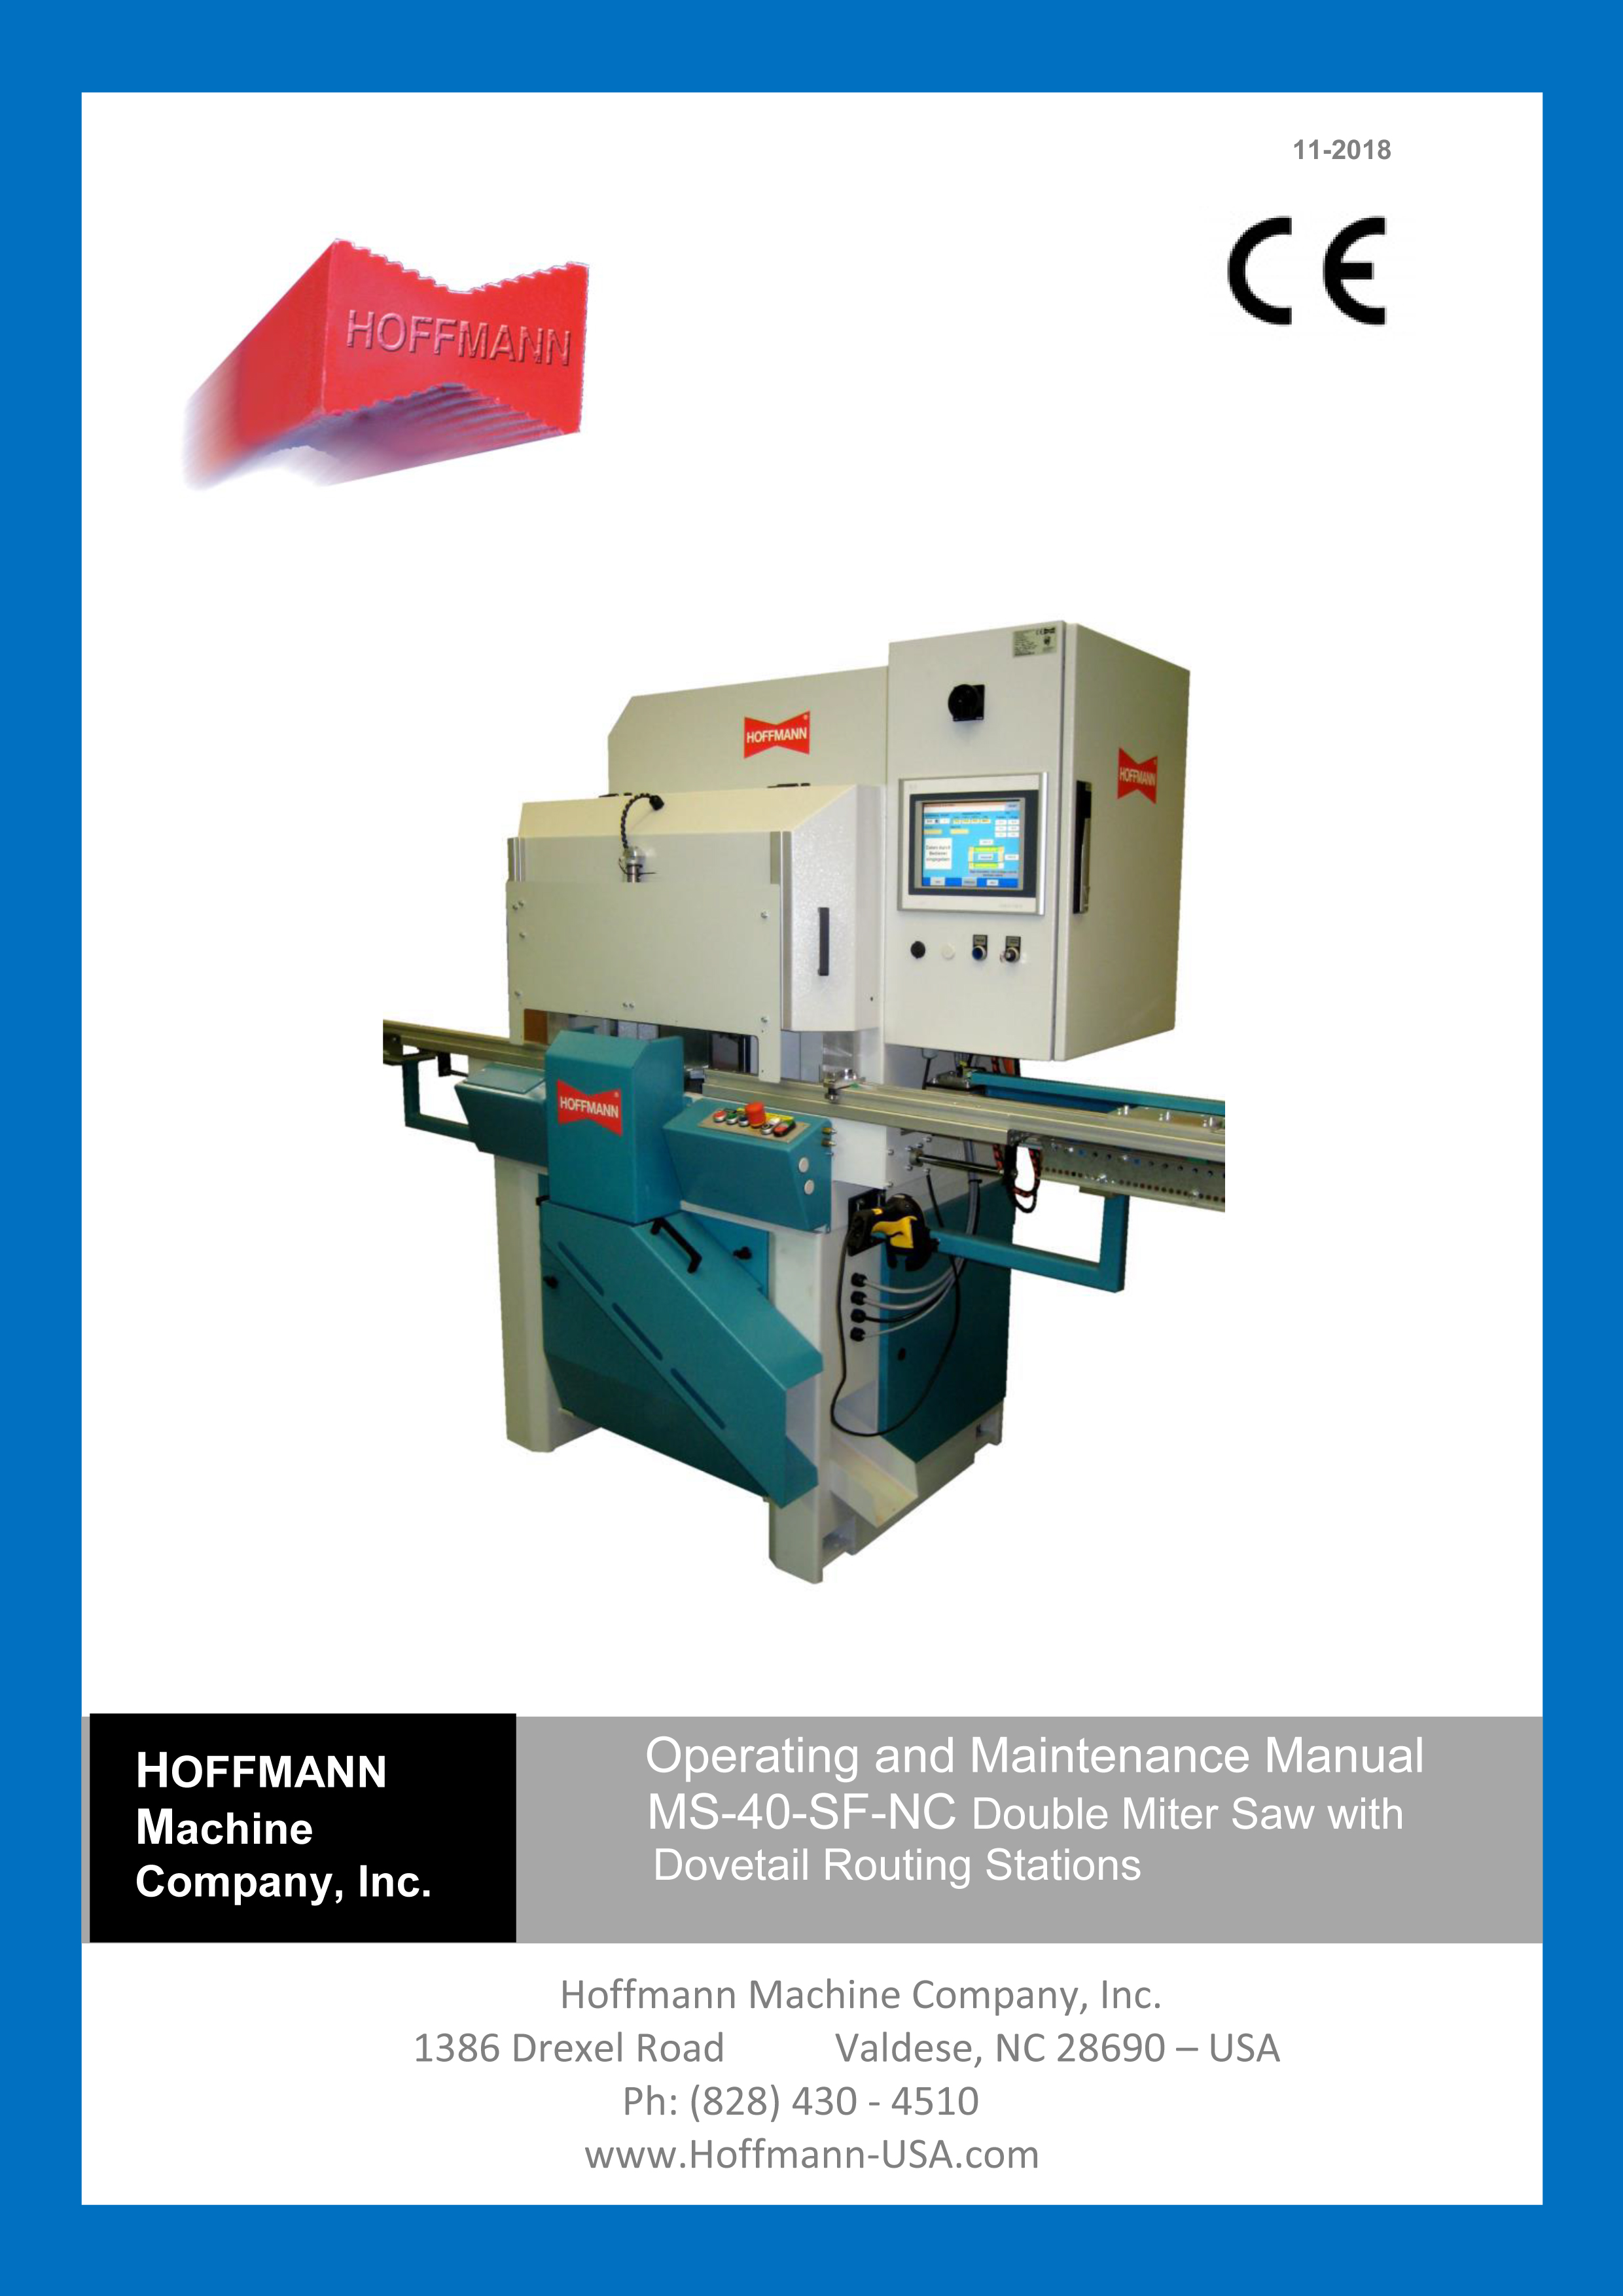 hoffmann-ms-40-sf-nc-operating-manual-2018-cover-page.jpg